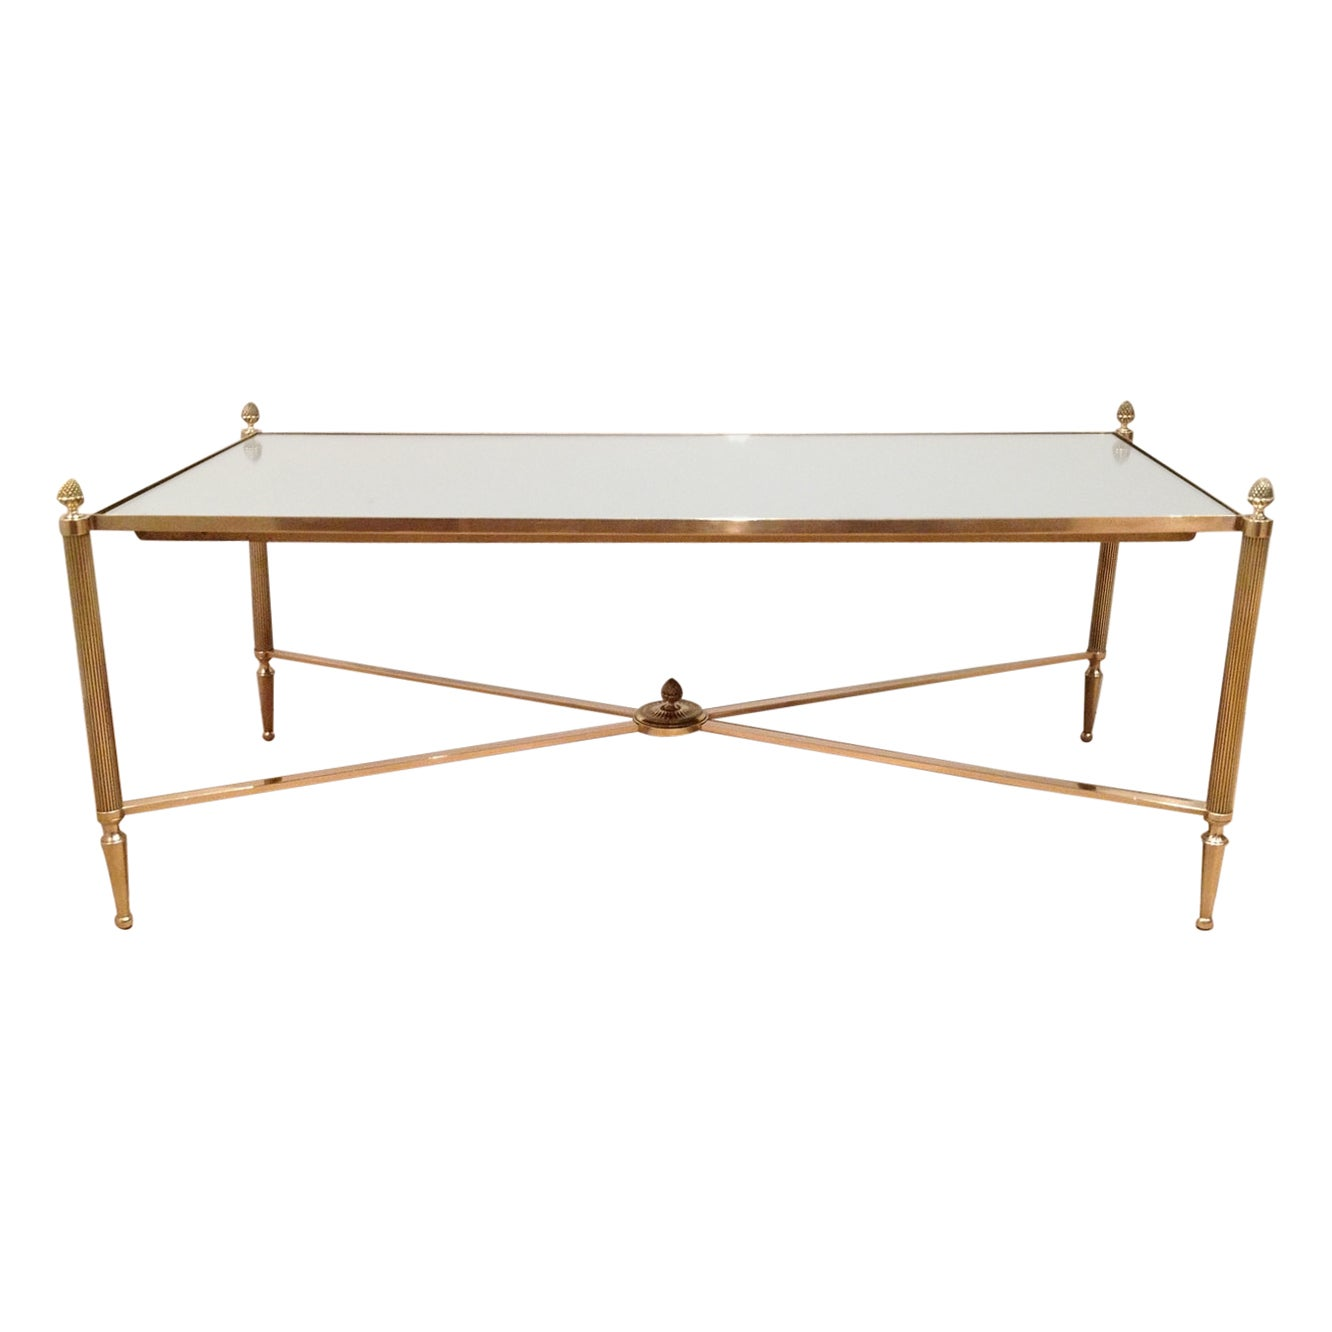 Maison Jansen, Neoclassical Style Brass Coffee Table with Mirror Top, French